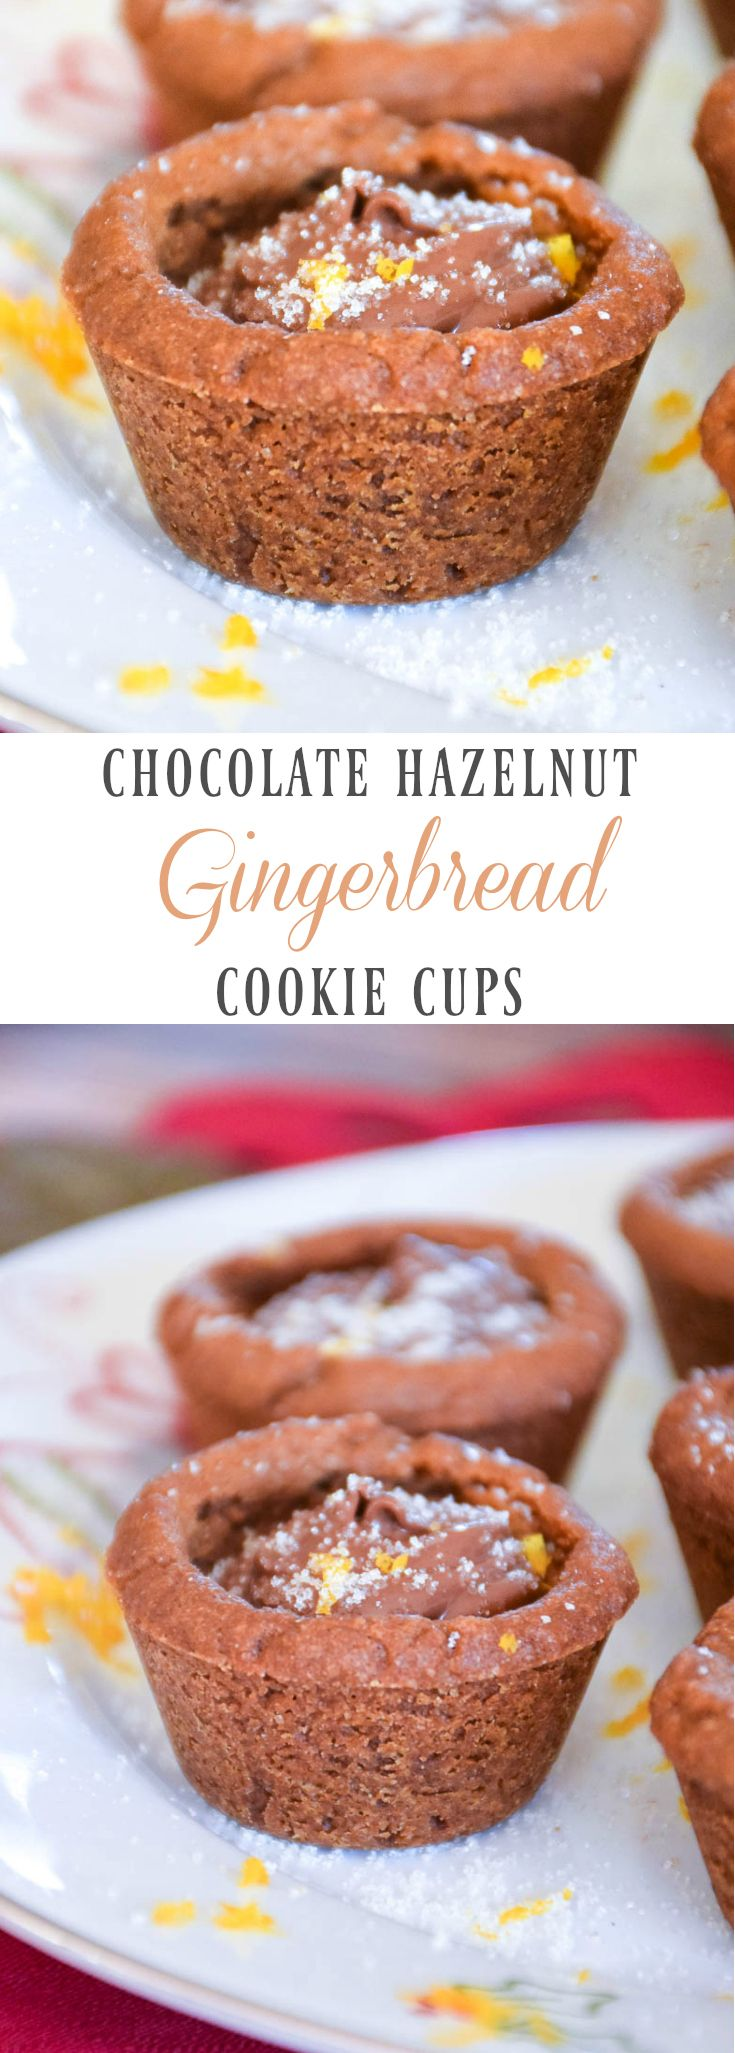 Chocolate Hazelnut Filled Gingerbread Cups - spread some cookie cheer this holiday season! #BakeWithBetty #GetYourBettyOn #HolidaysWithBetty https://ooh.li/526ed4d